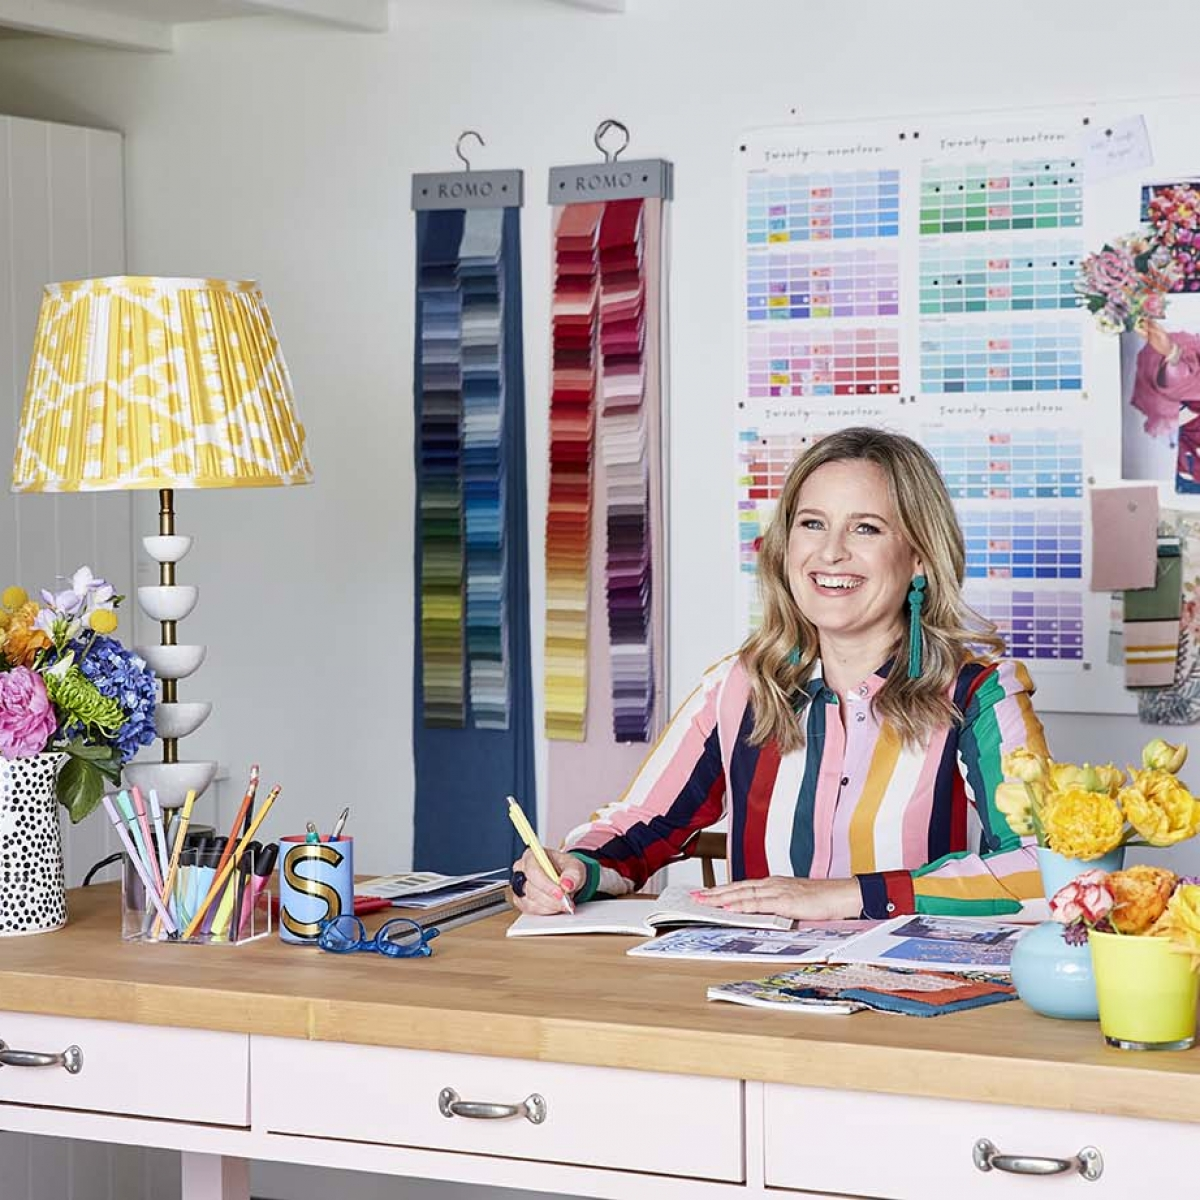 Be your own interior designer is the online course launched by Sophie Robinson in which she shares her creative deisgn process so you can design rooms with confidence